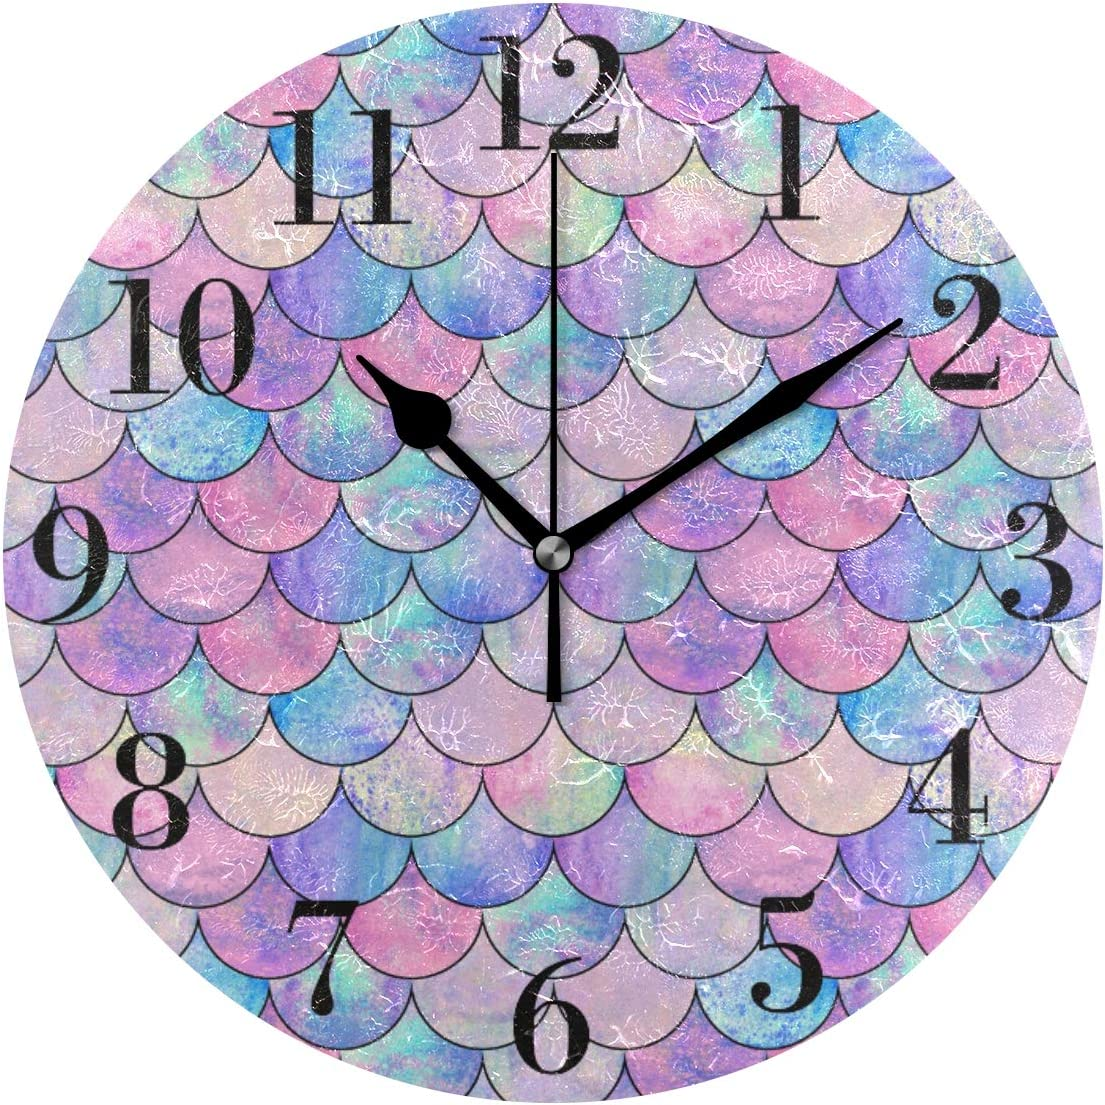 susiyo Mermaid Fish Scale Wall Clock 9.8 Inch Silent Round Wall Clock Battery Operated Non Ticking Creative Decorative Clock for Kids Living Room Bedroom Office Kitchen Home Decor